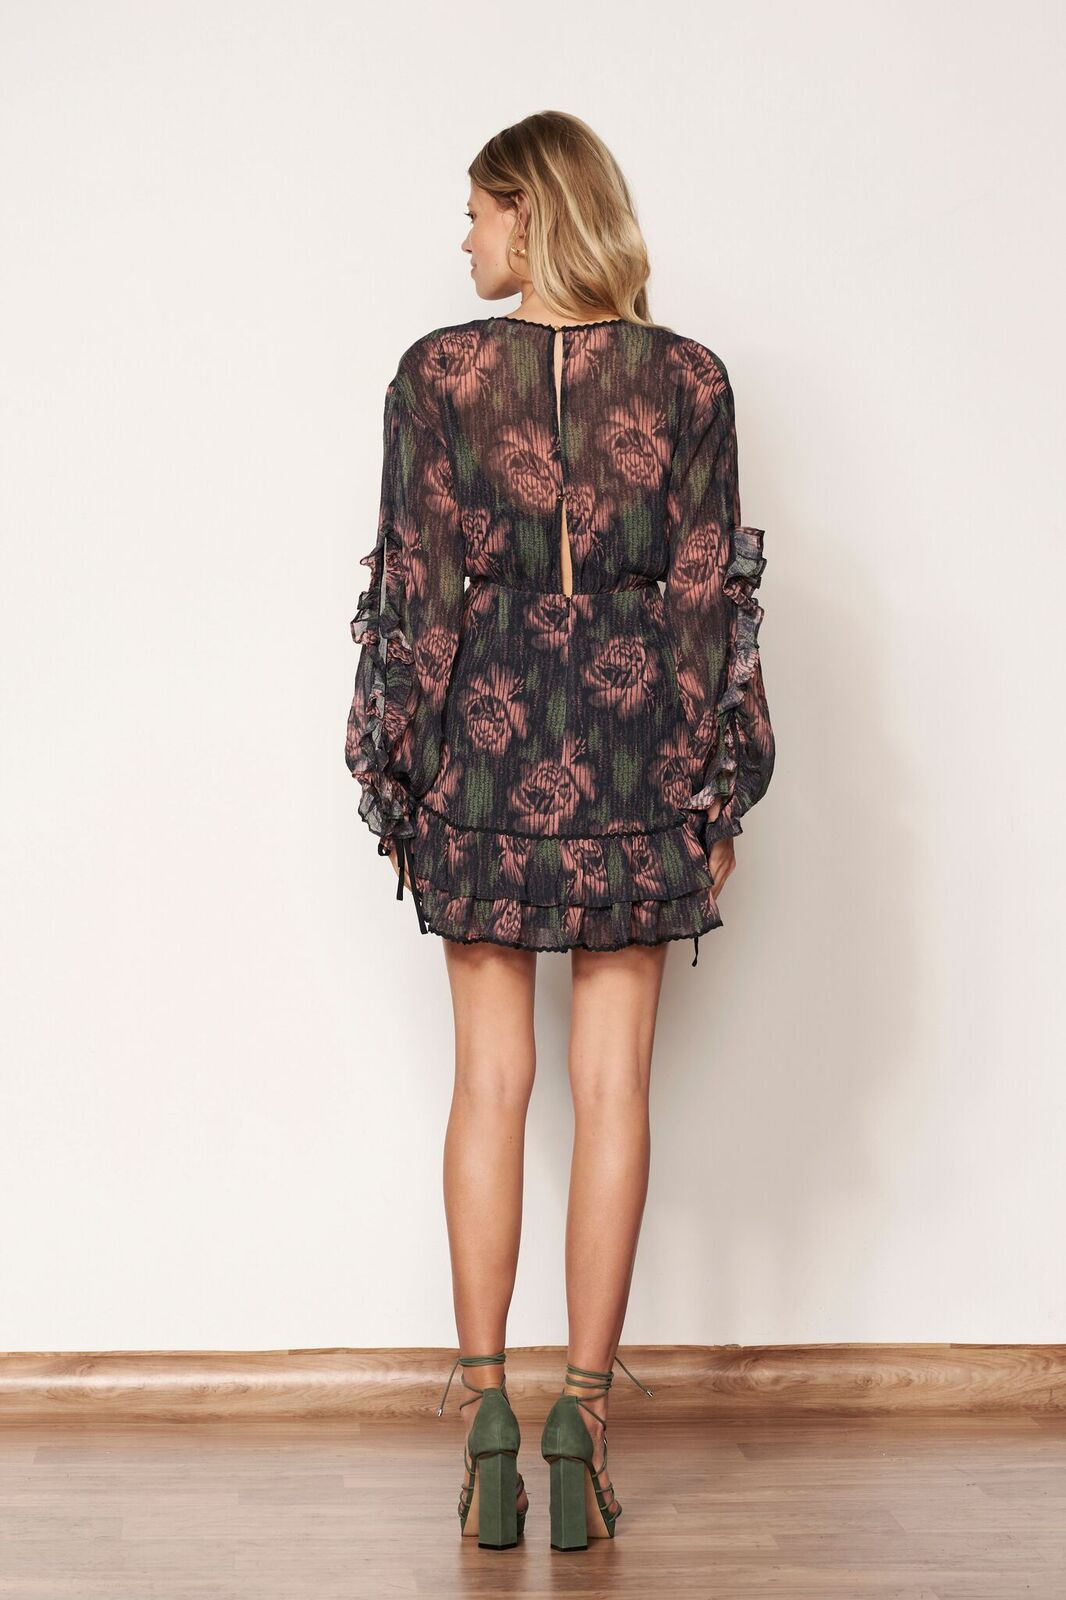 Stevie May Ornate Mini Dress - Stevie May, The East Order, Talulah, Pasduchas, Everly Collective